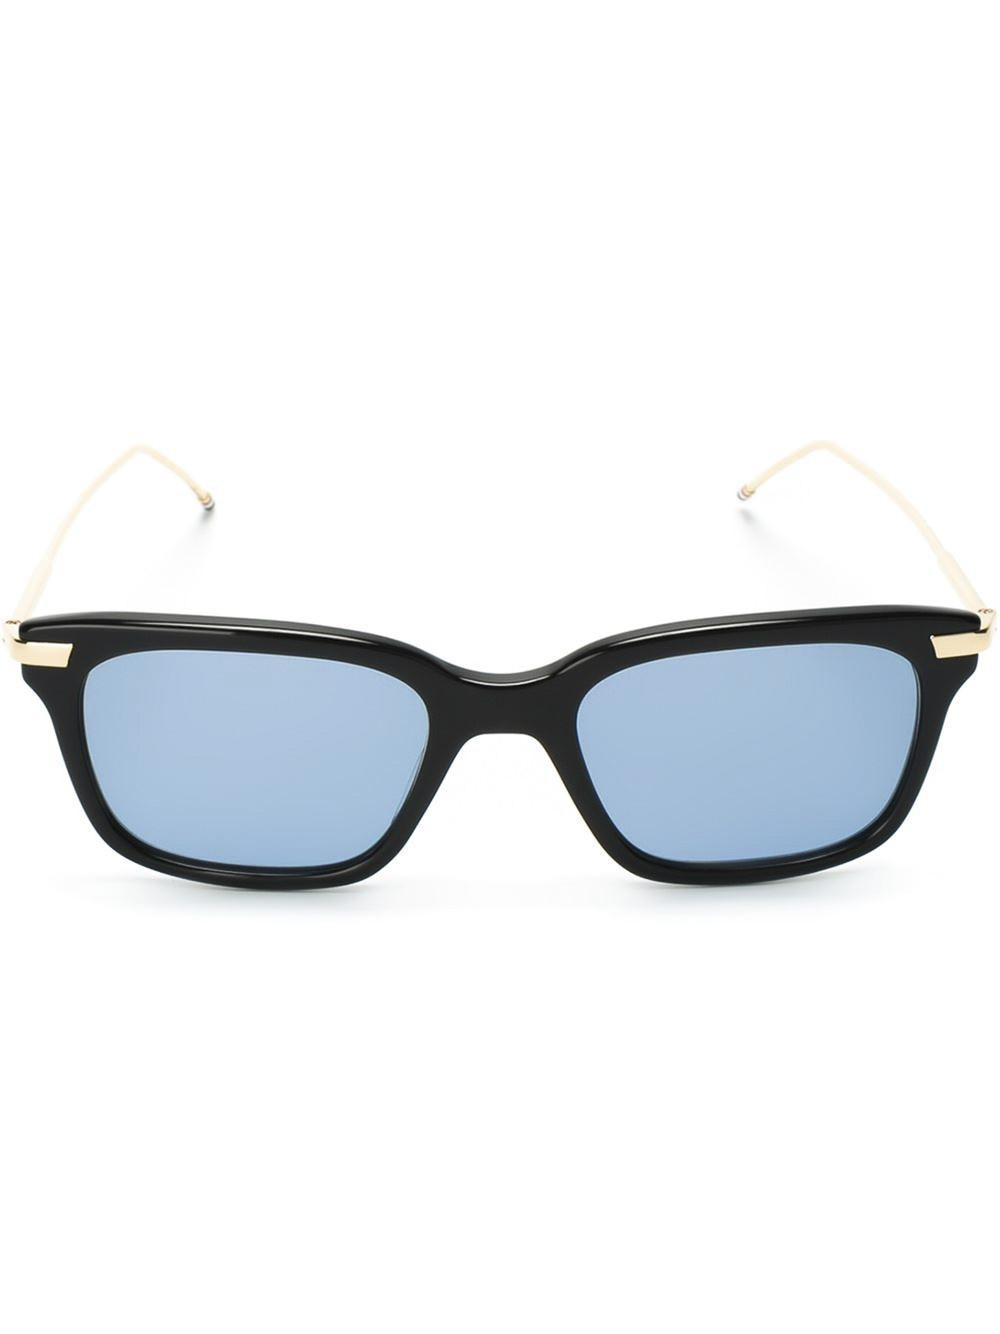 7a53b37698a Thom Browne Square Frame Sunglasses in Blue for Men - Lyst